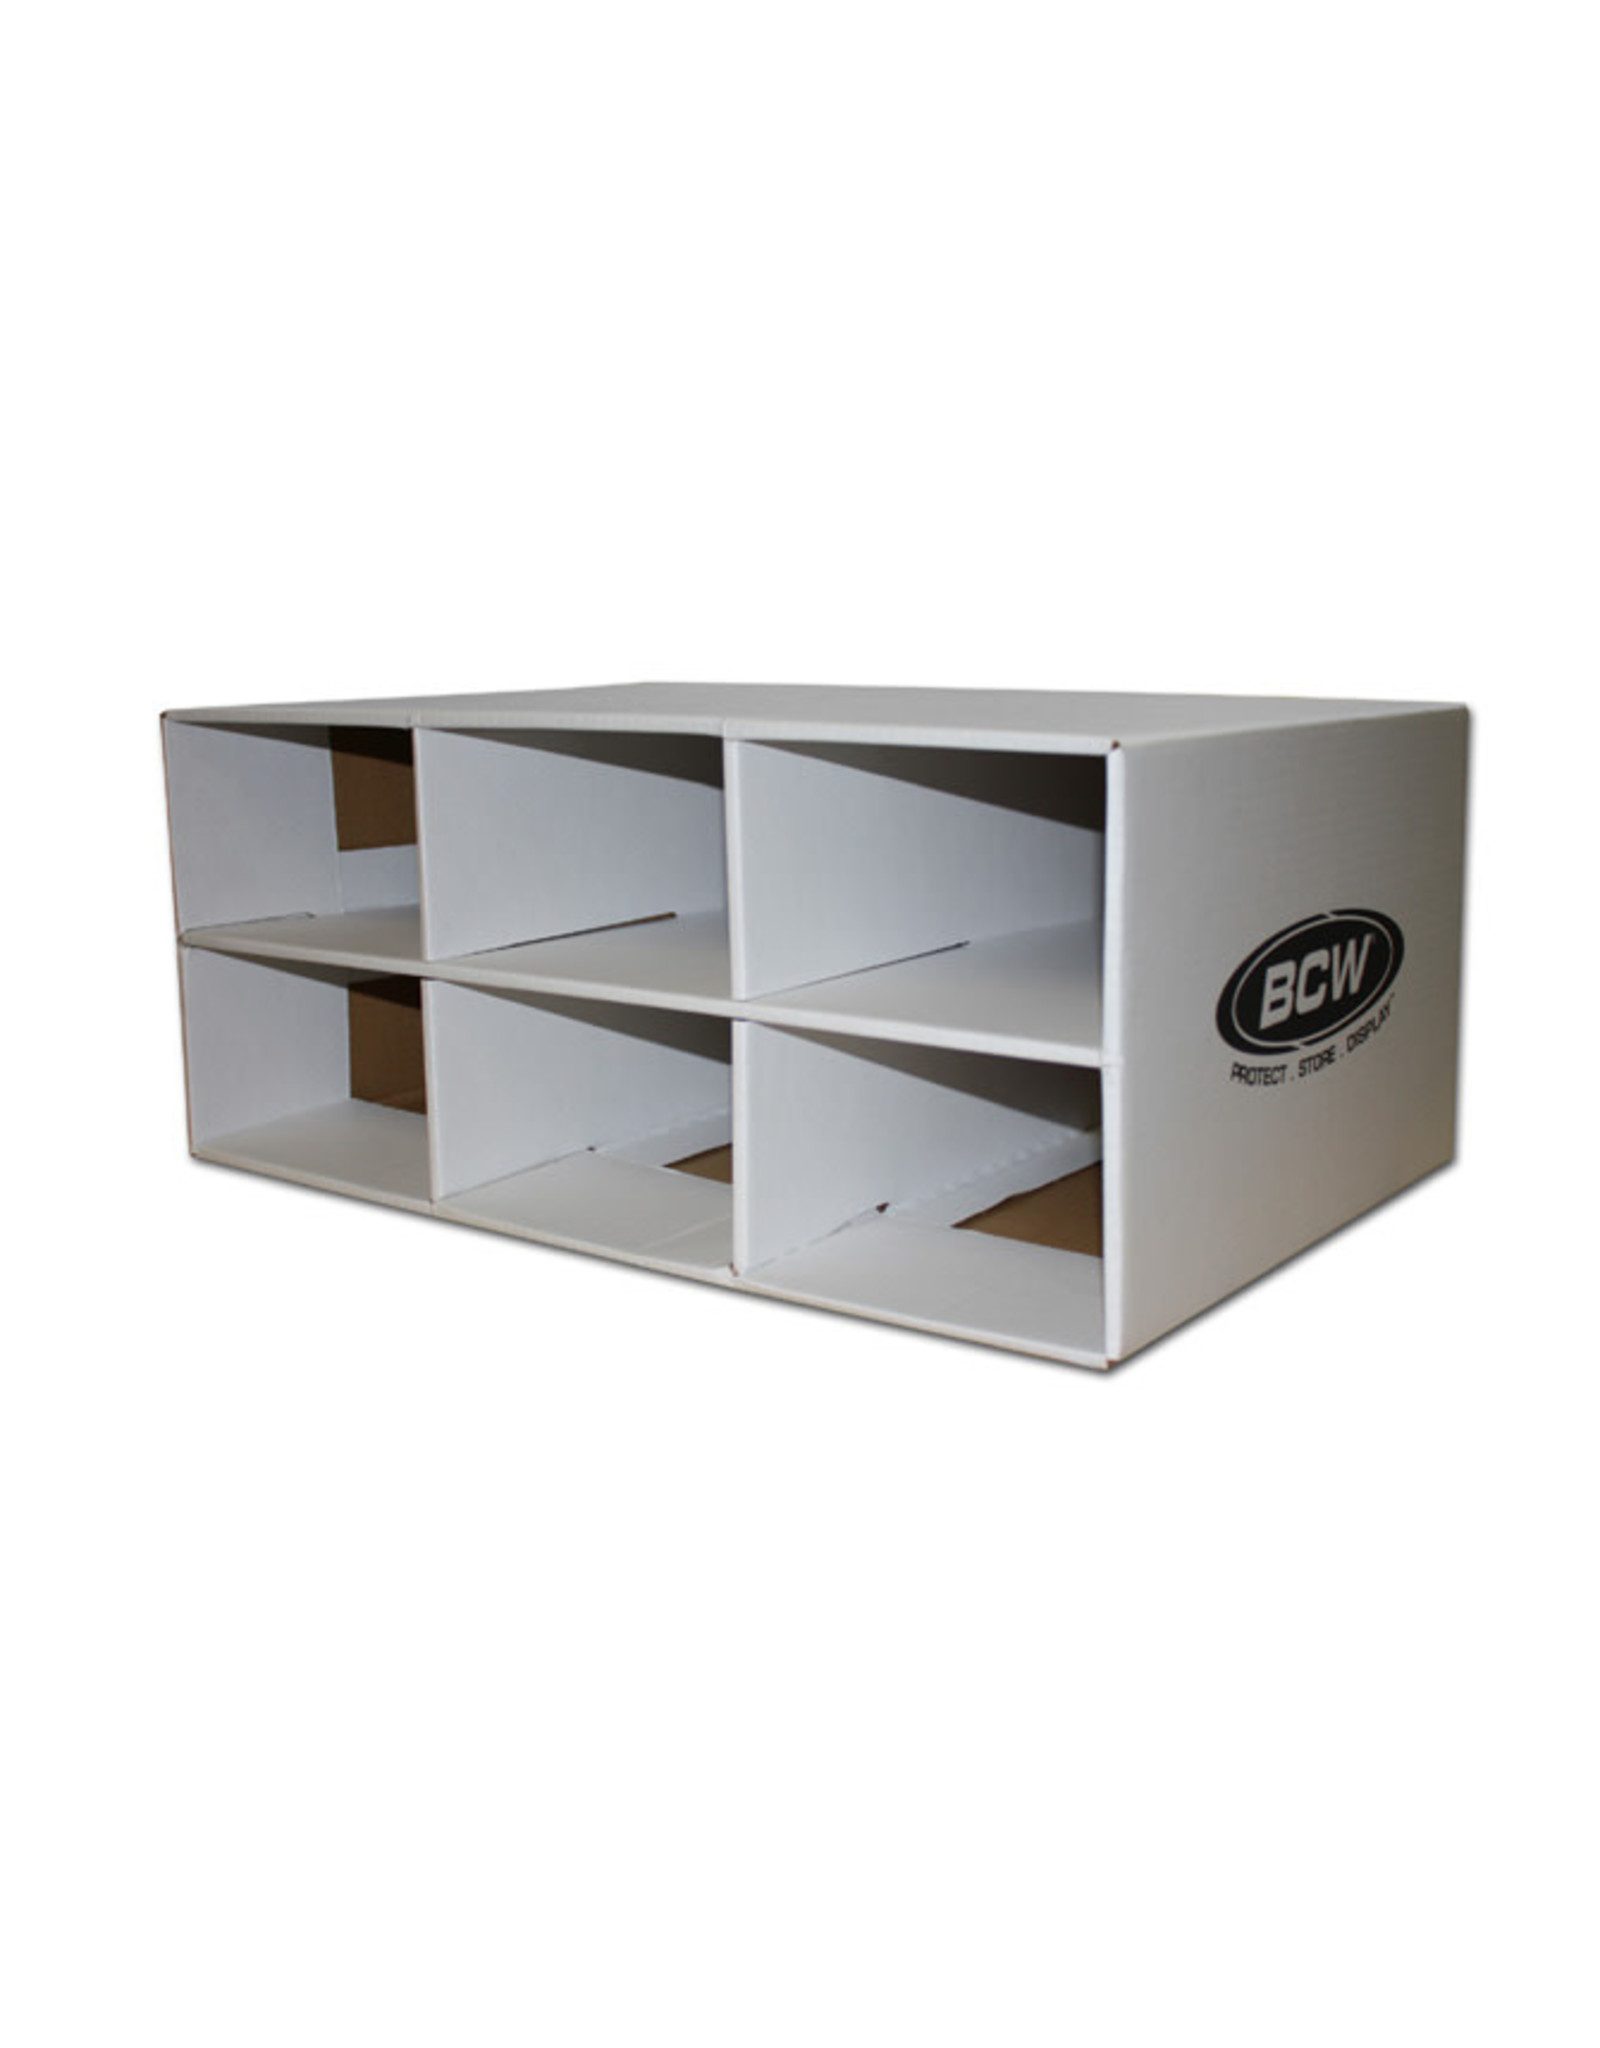 BCW 1600 CT SHOE CARD HOUSE